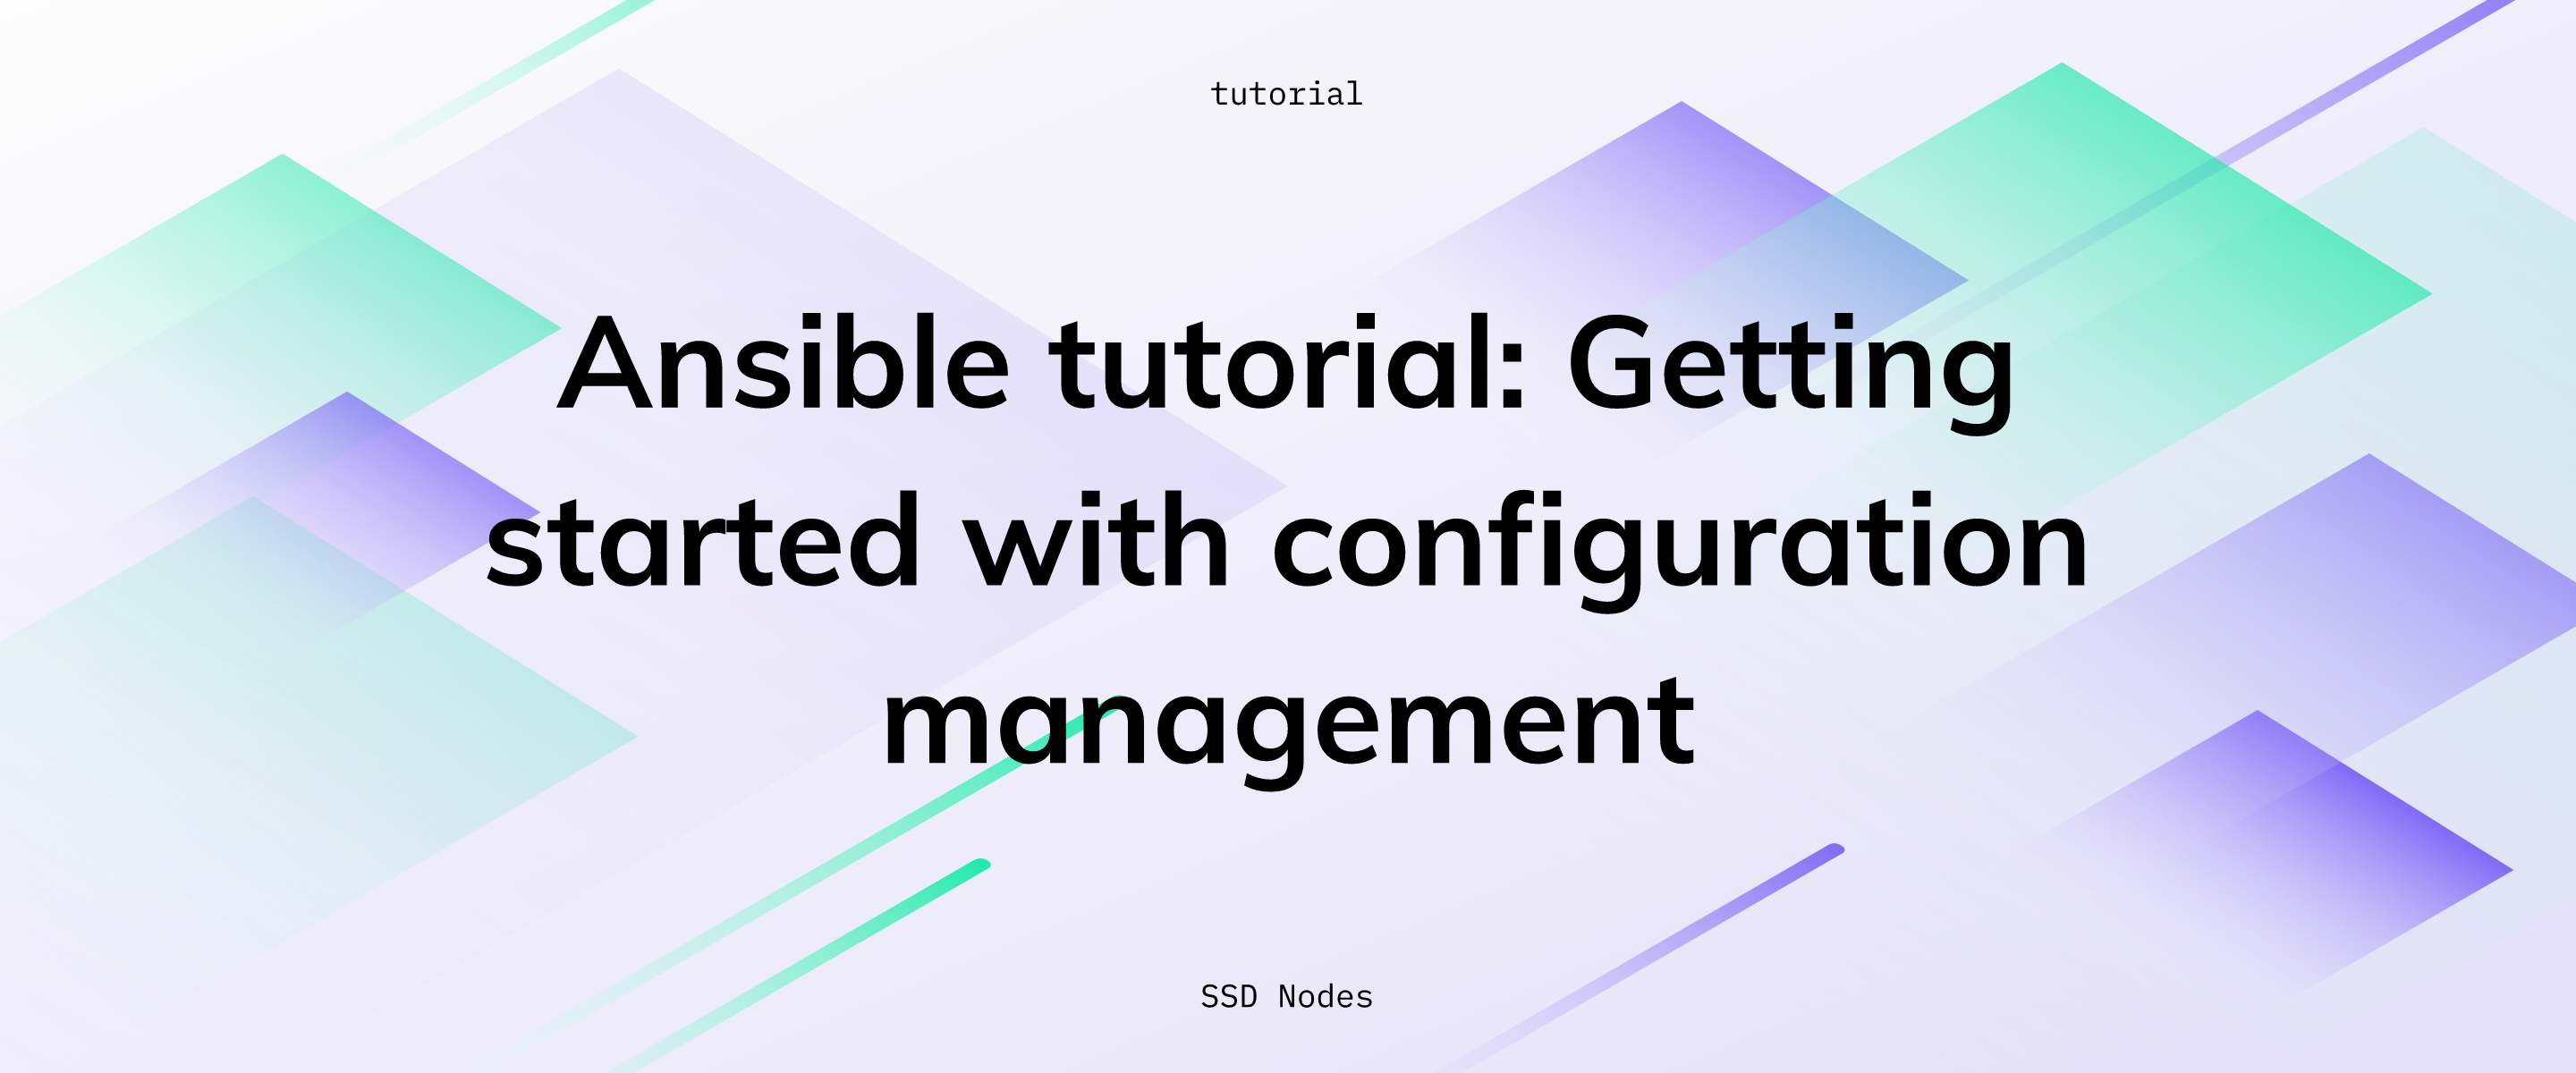 Ansible tutorial: Getting started with configuration management